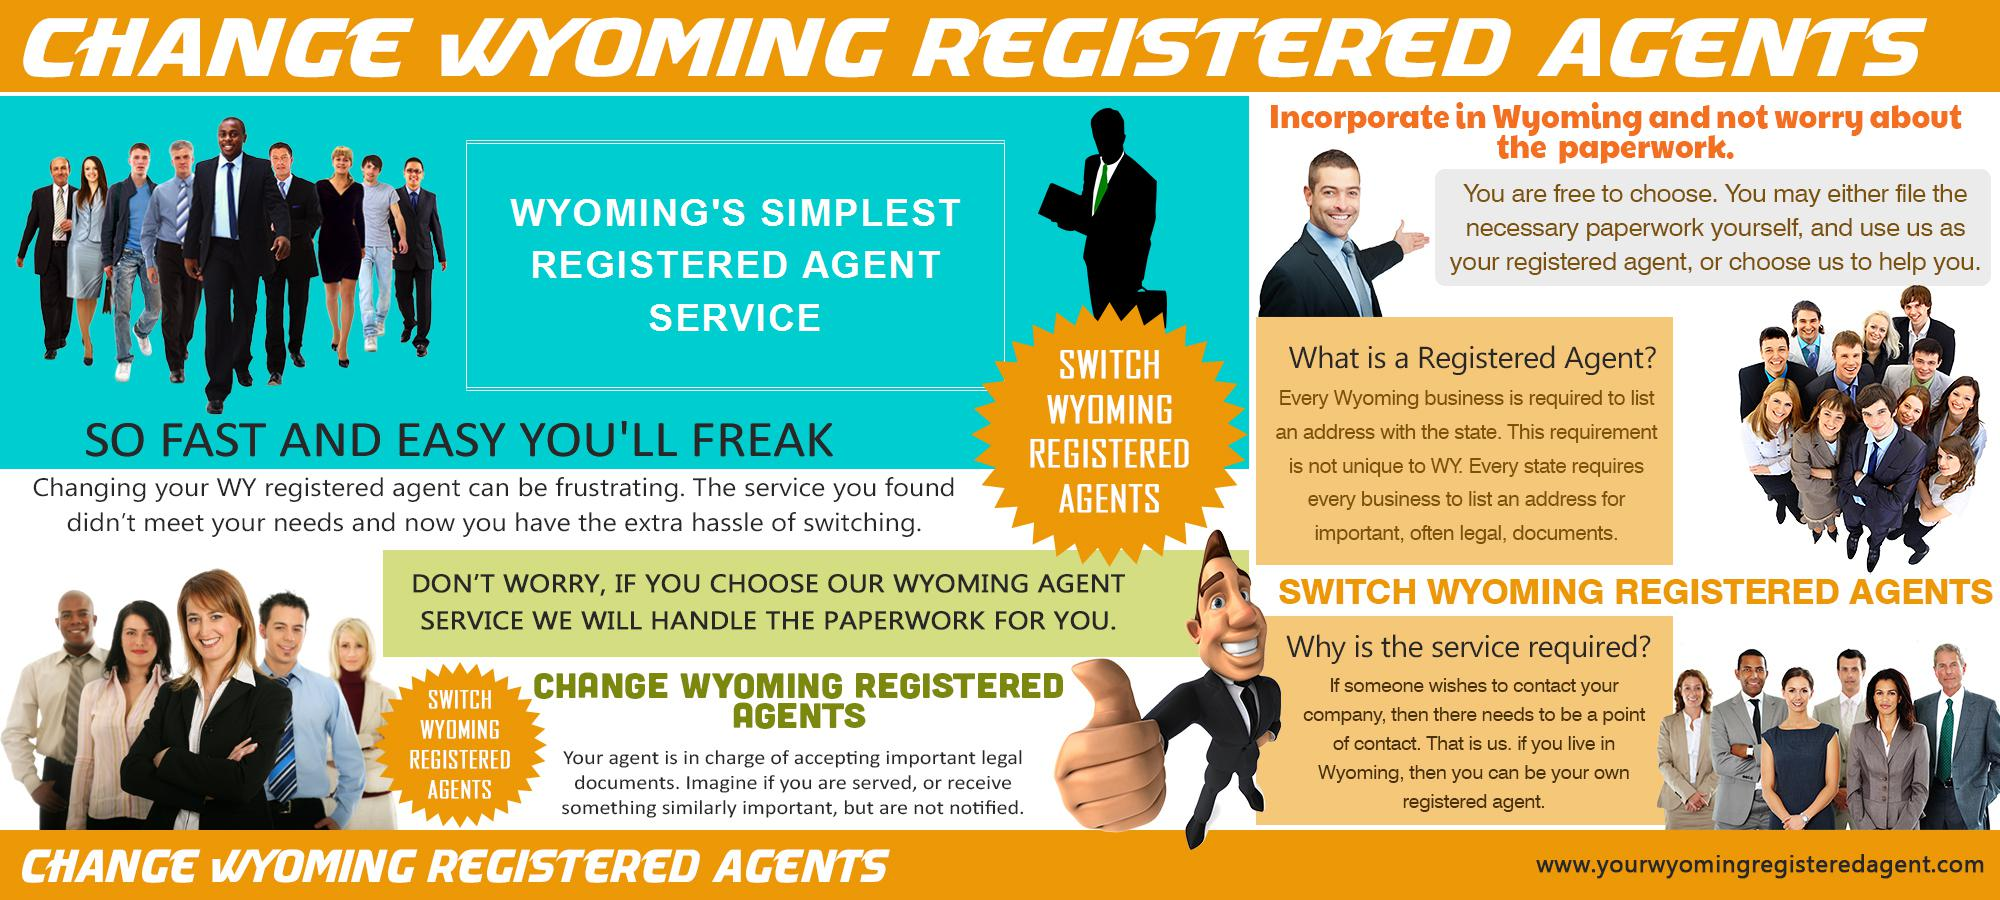 Wyoming Registered Agent's Hangs  Lockerdome. Client First Settlement Funding. Social Security Number Chicago. Dual Diagnosis Training Lovett Dental Reviews. Bankruptcy Attorney Fort Lauderdale Fl. Seminar Marketing Services Tax Debt Solutions. Marketing Jewelry Online Silverado Truck 2013. State Farm Insurance San Antonio Texas. Mortgage Companies Ratings Cda Dakota County